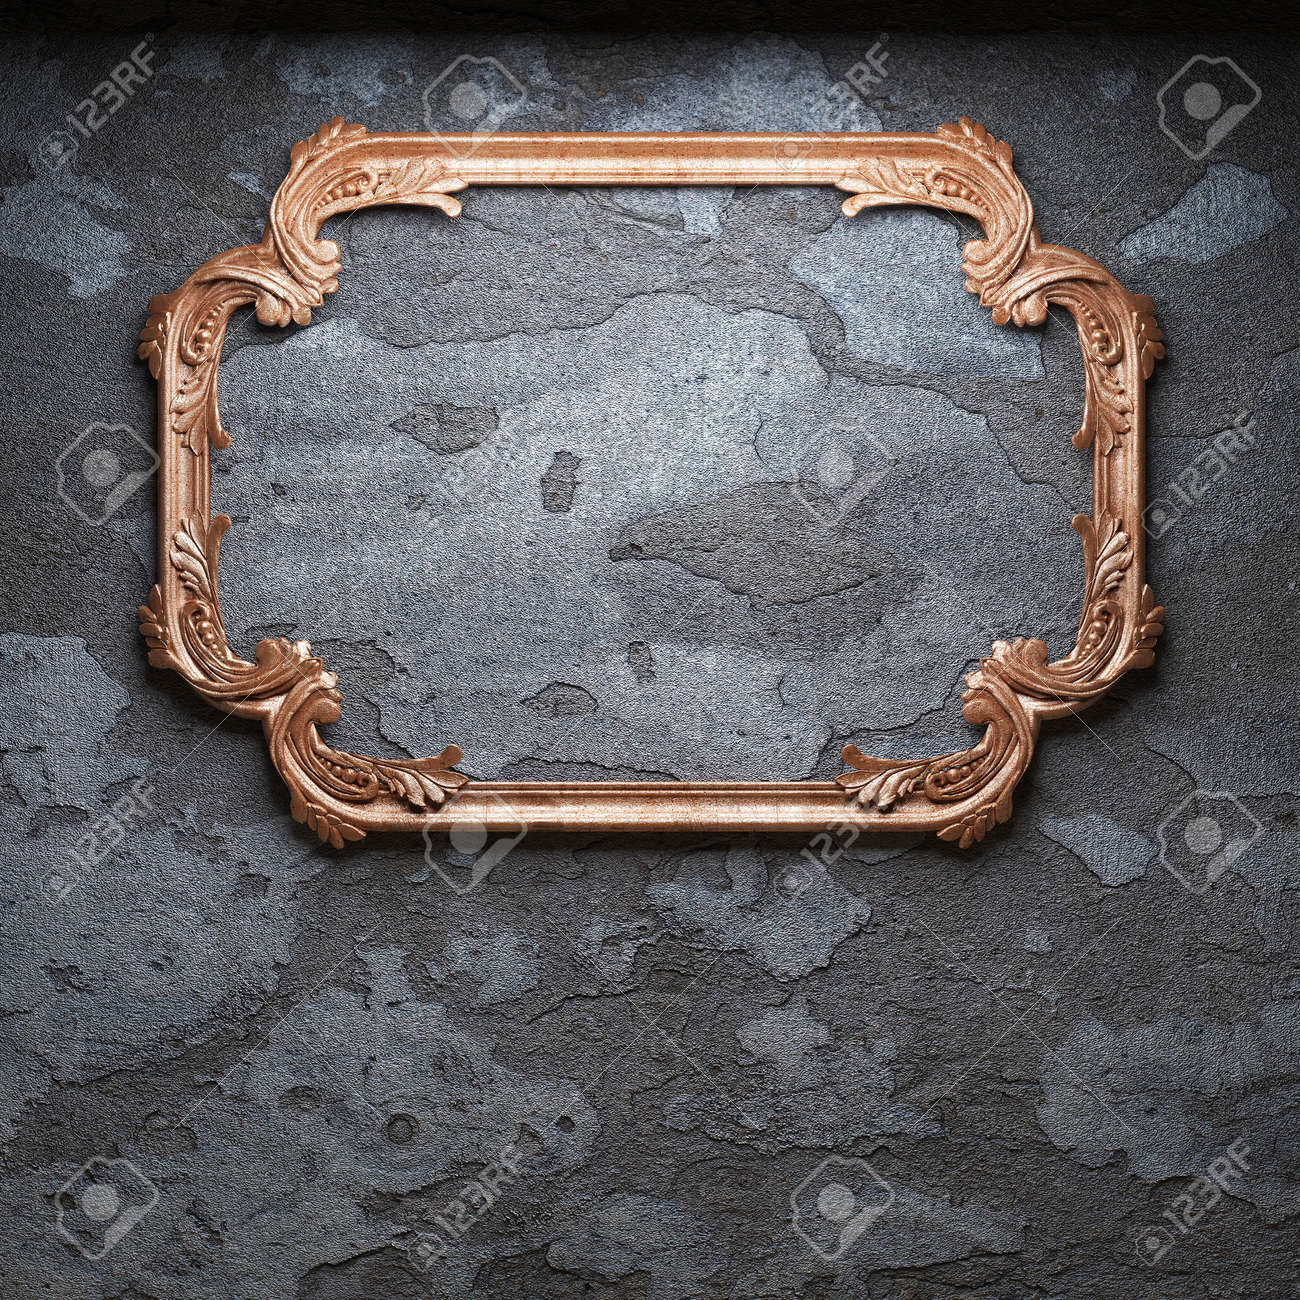 old concrete wall and frame Stock Photo - 6871387